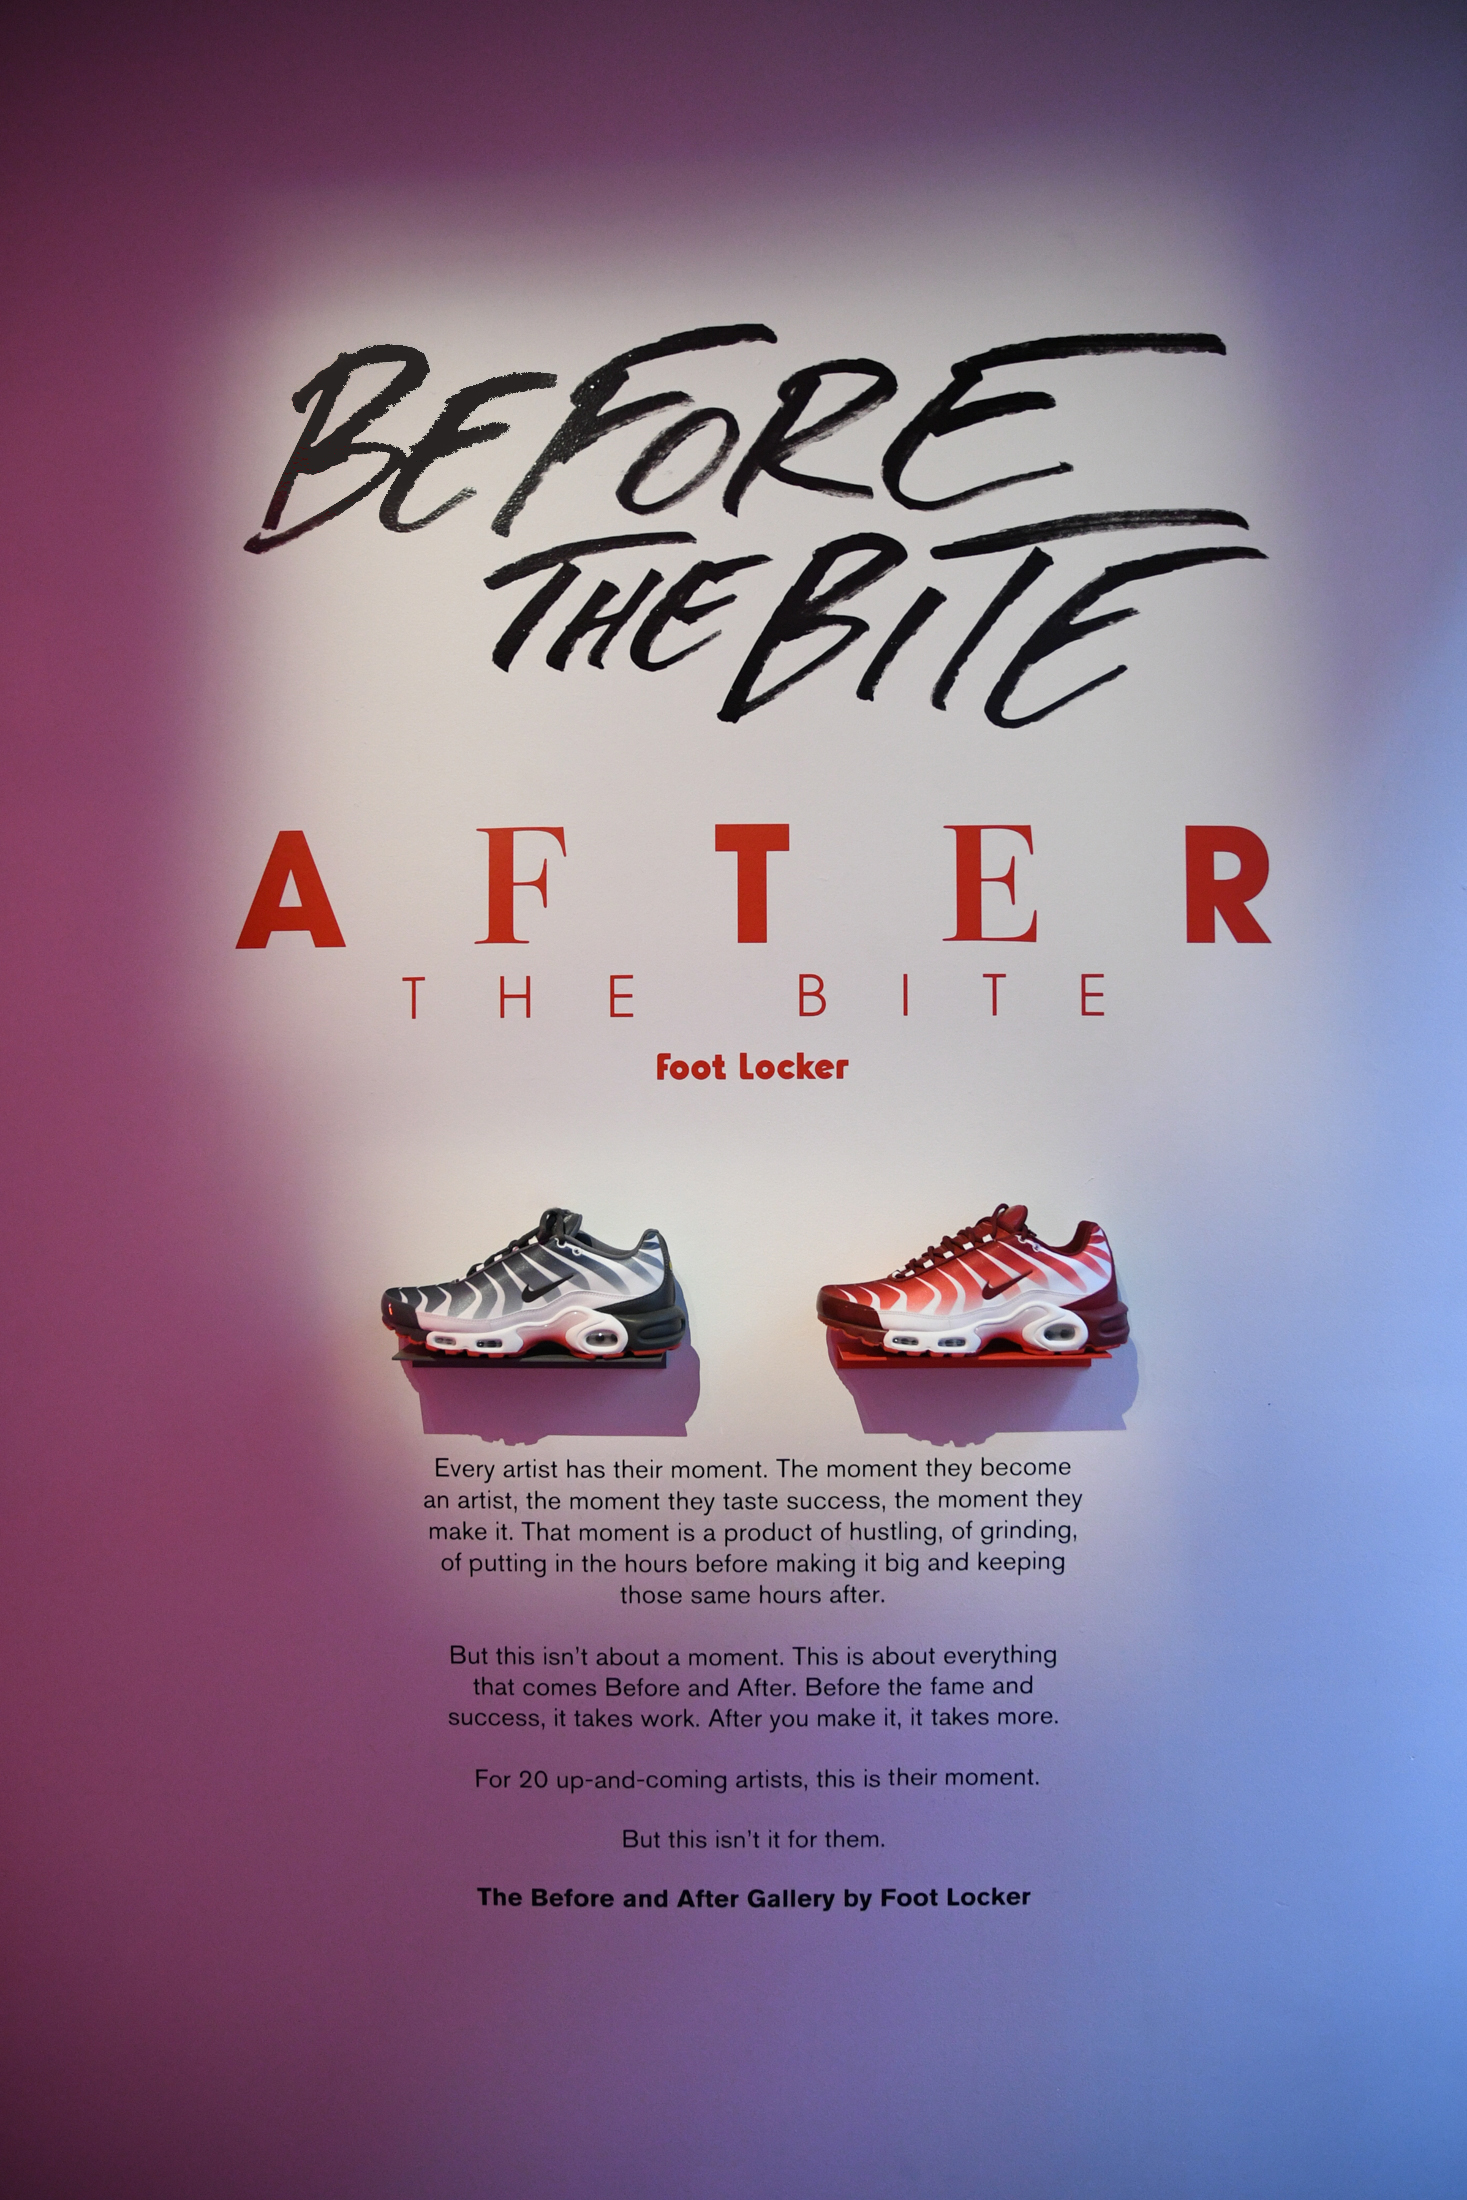 The Before the Bite (left), After the Bite (right), and Gallery manifesto. (Click to enlarge.)